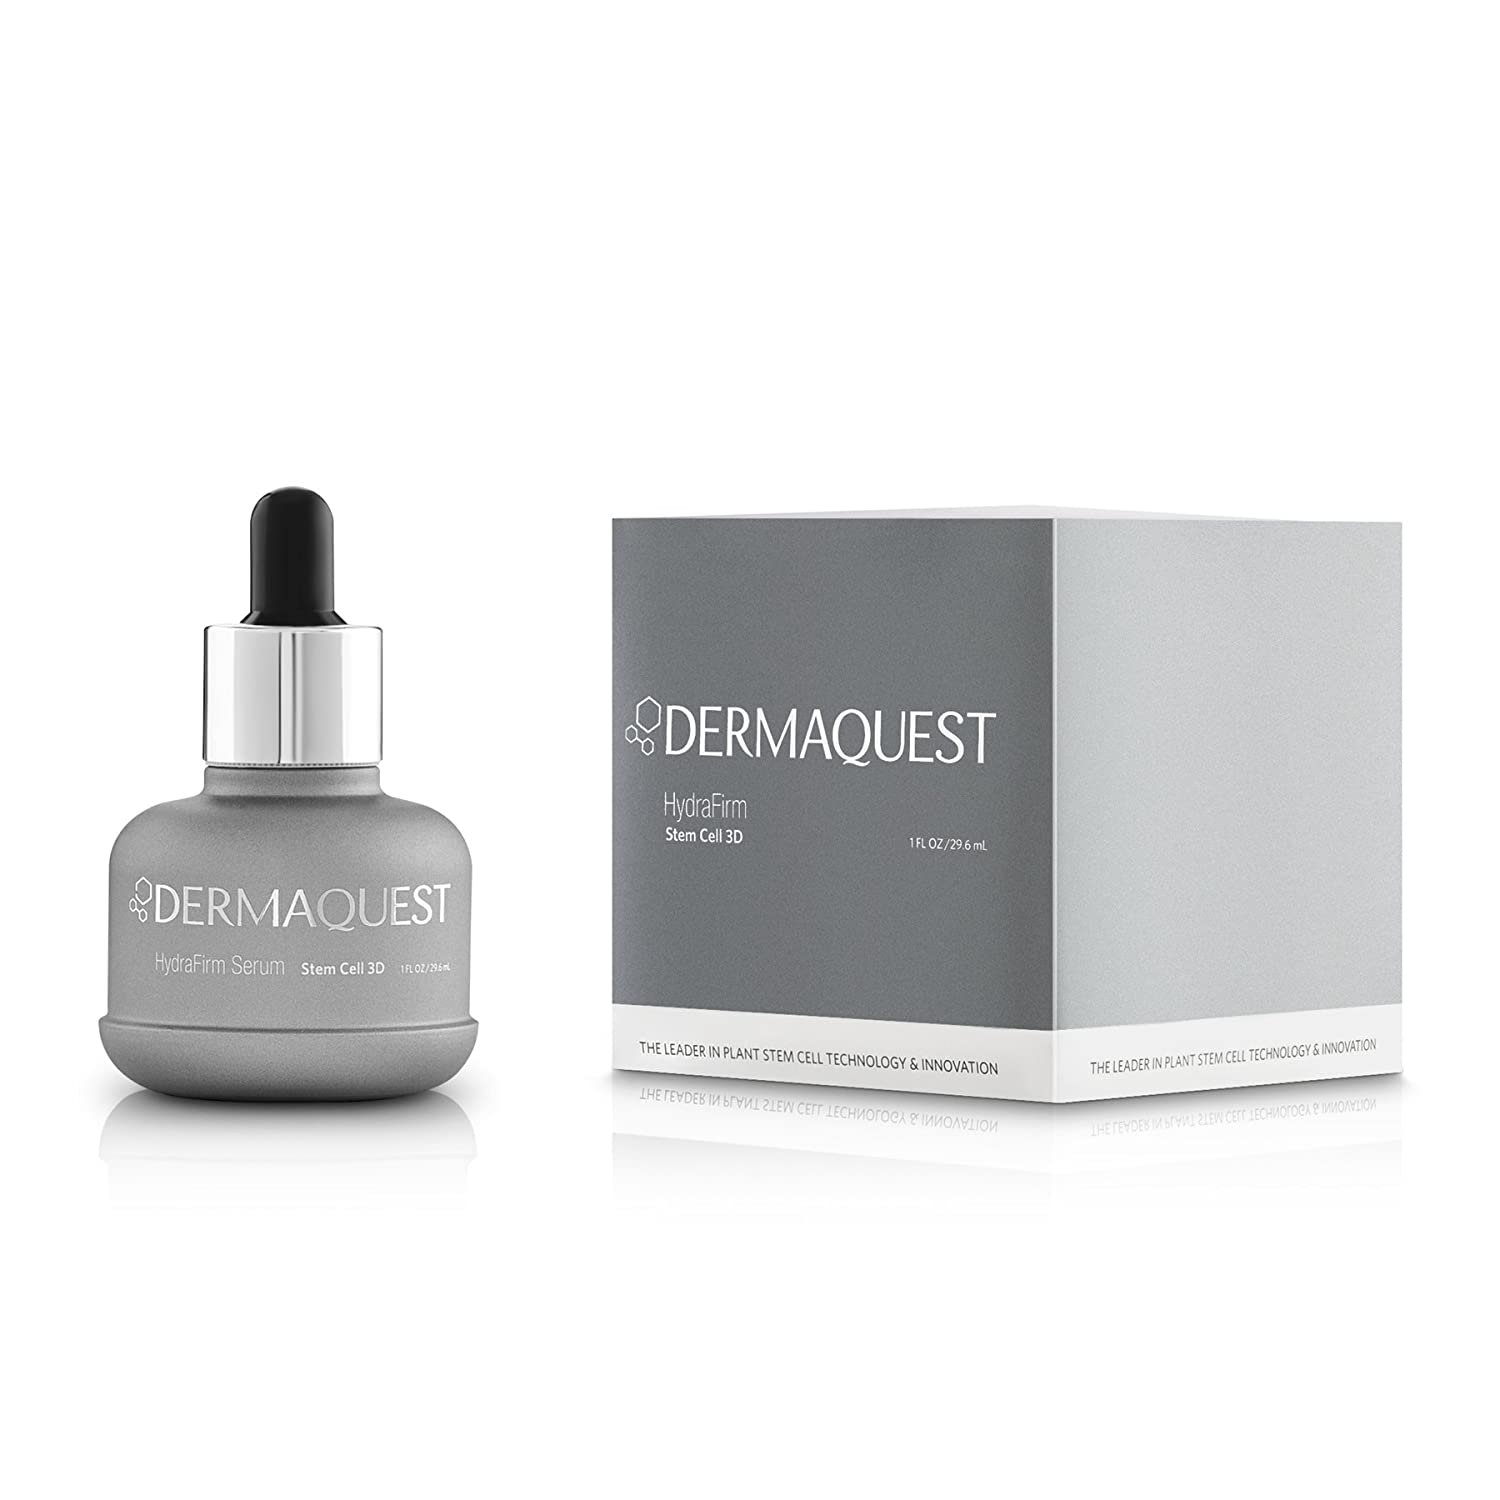 2995dac5ce742e Amazon.com: DermaQuest Stem Cell 3D HydraFirm Anti-Aging Serum - Fine Lines  and Wrinkles Reducer, 1 fl. oz.: Beauty